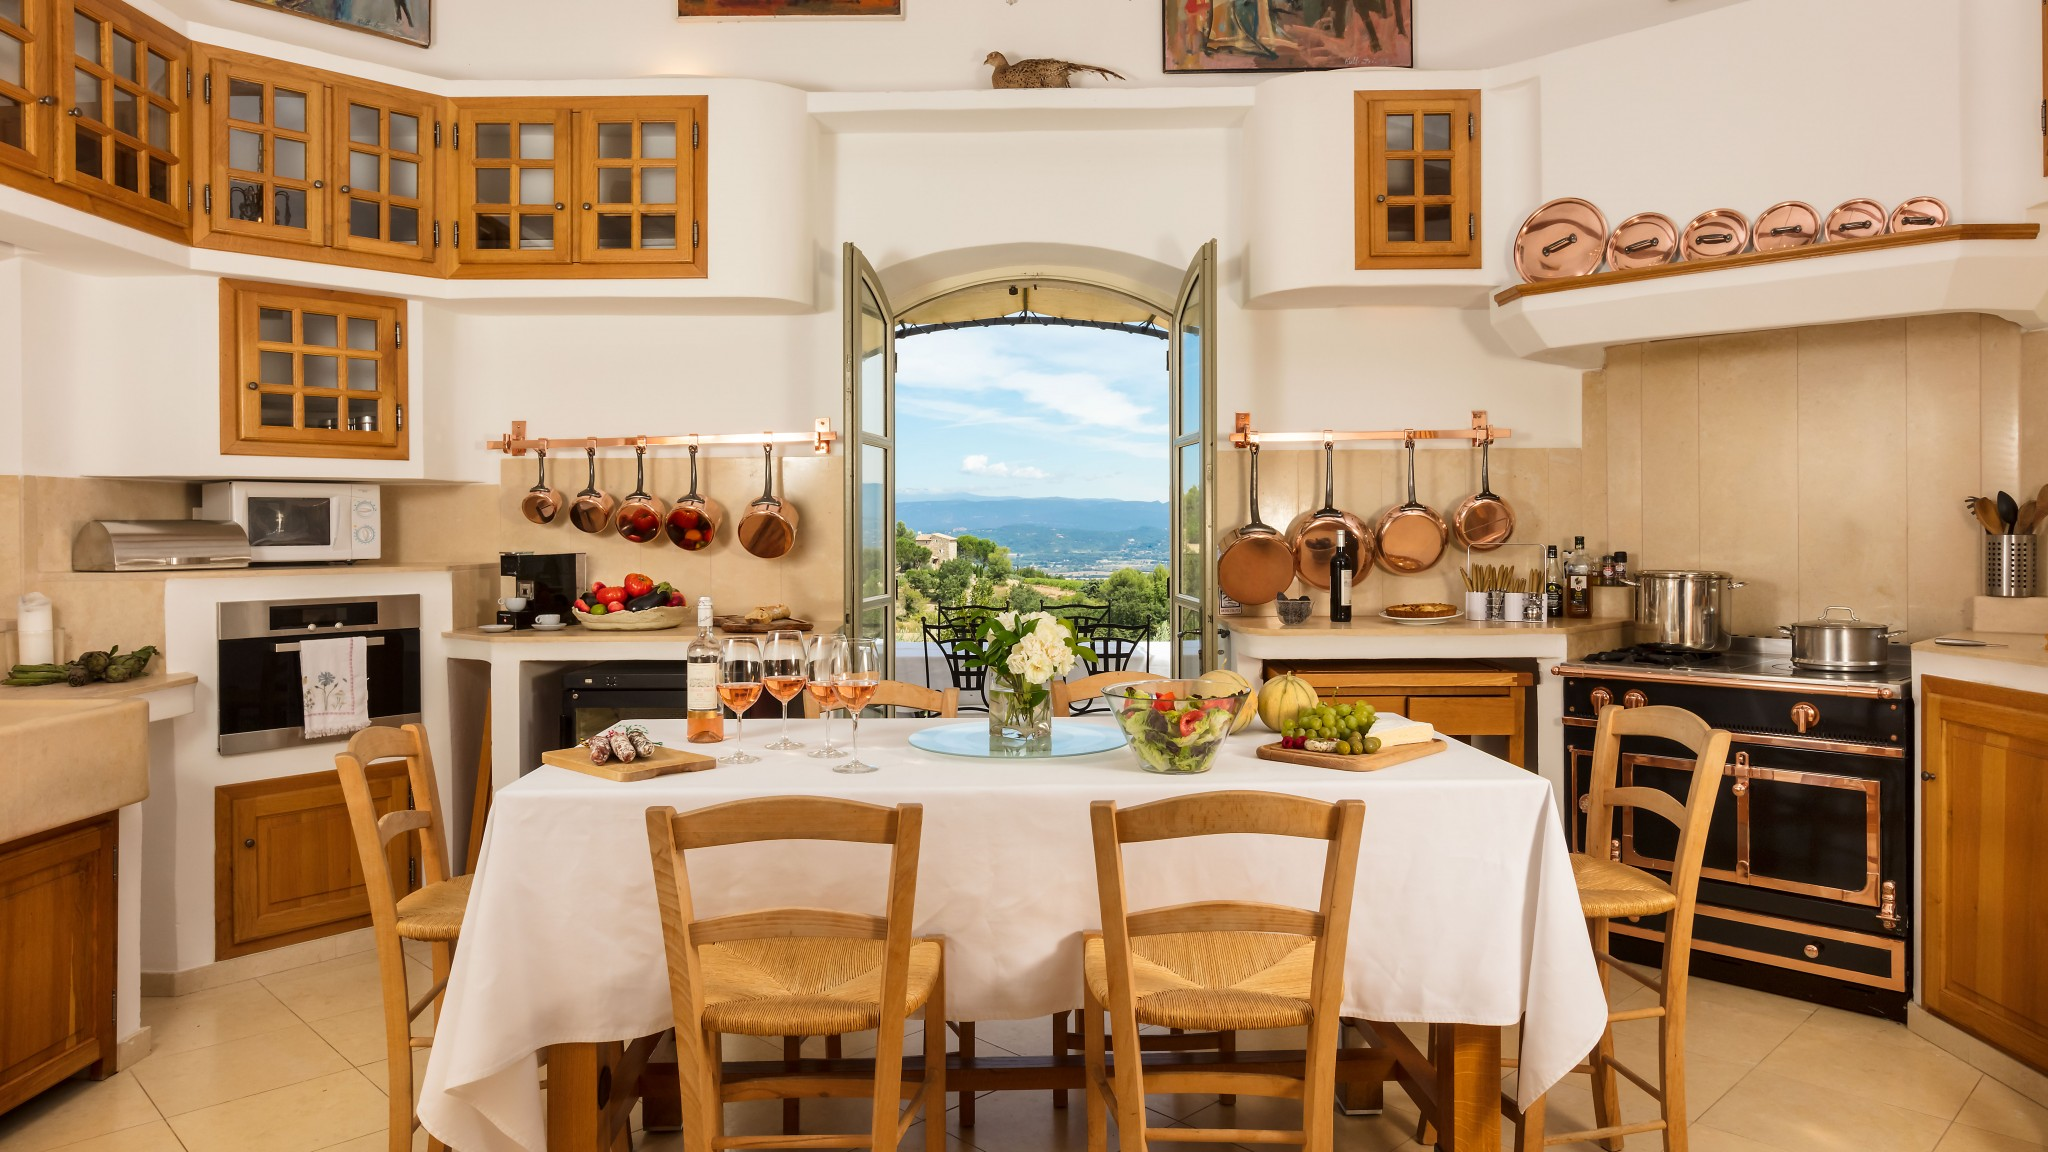 Chateau Lavande kitchen